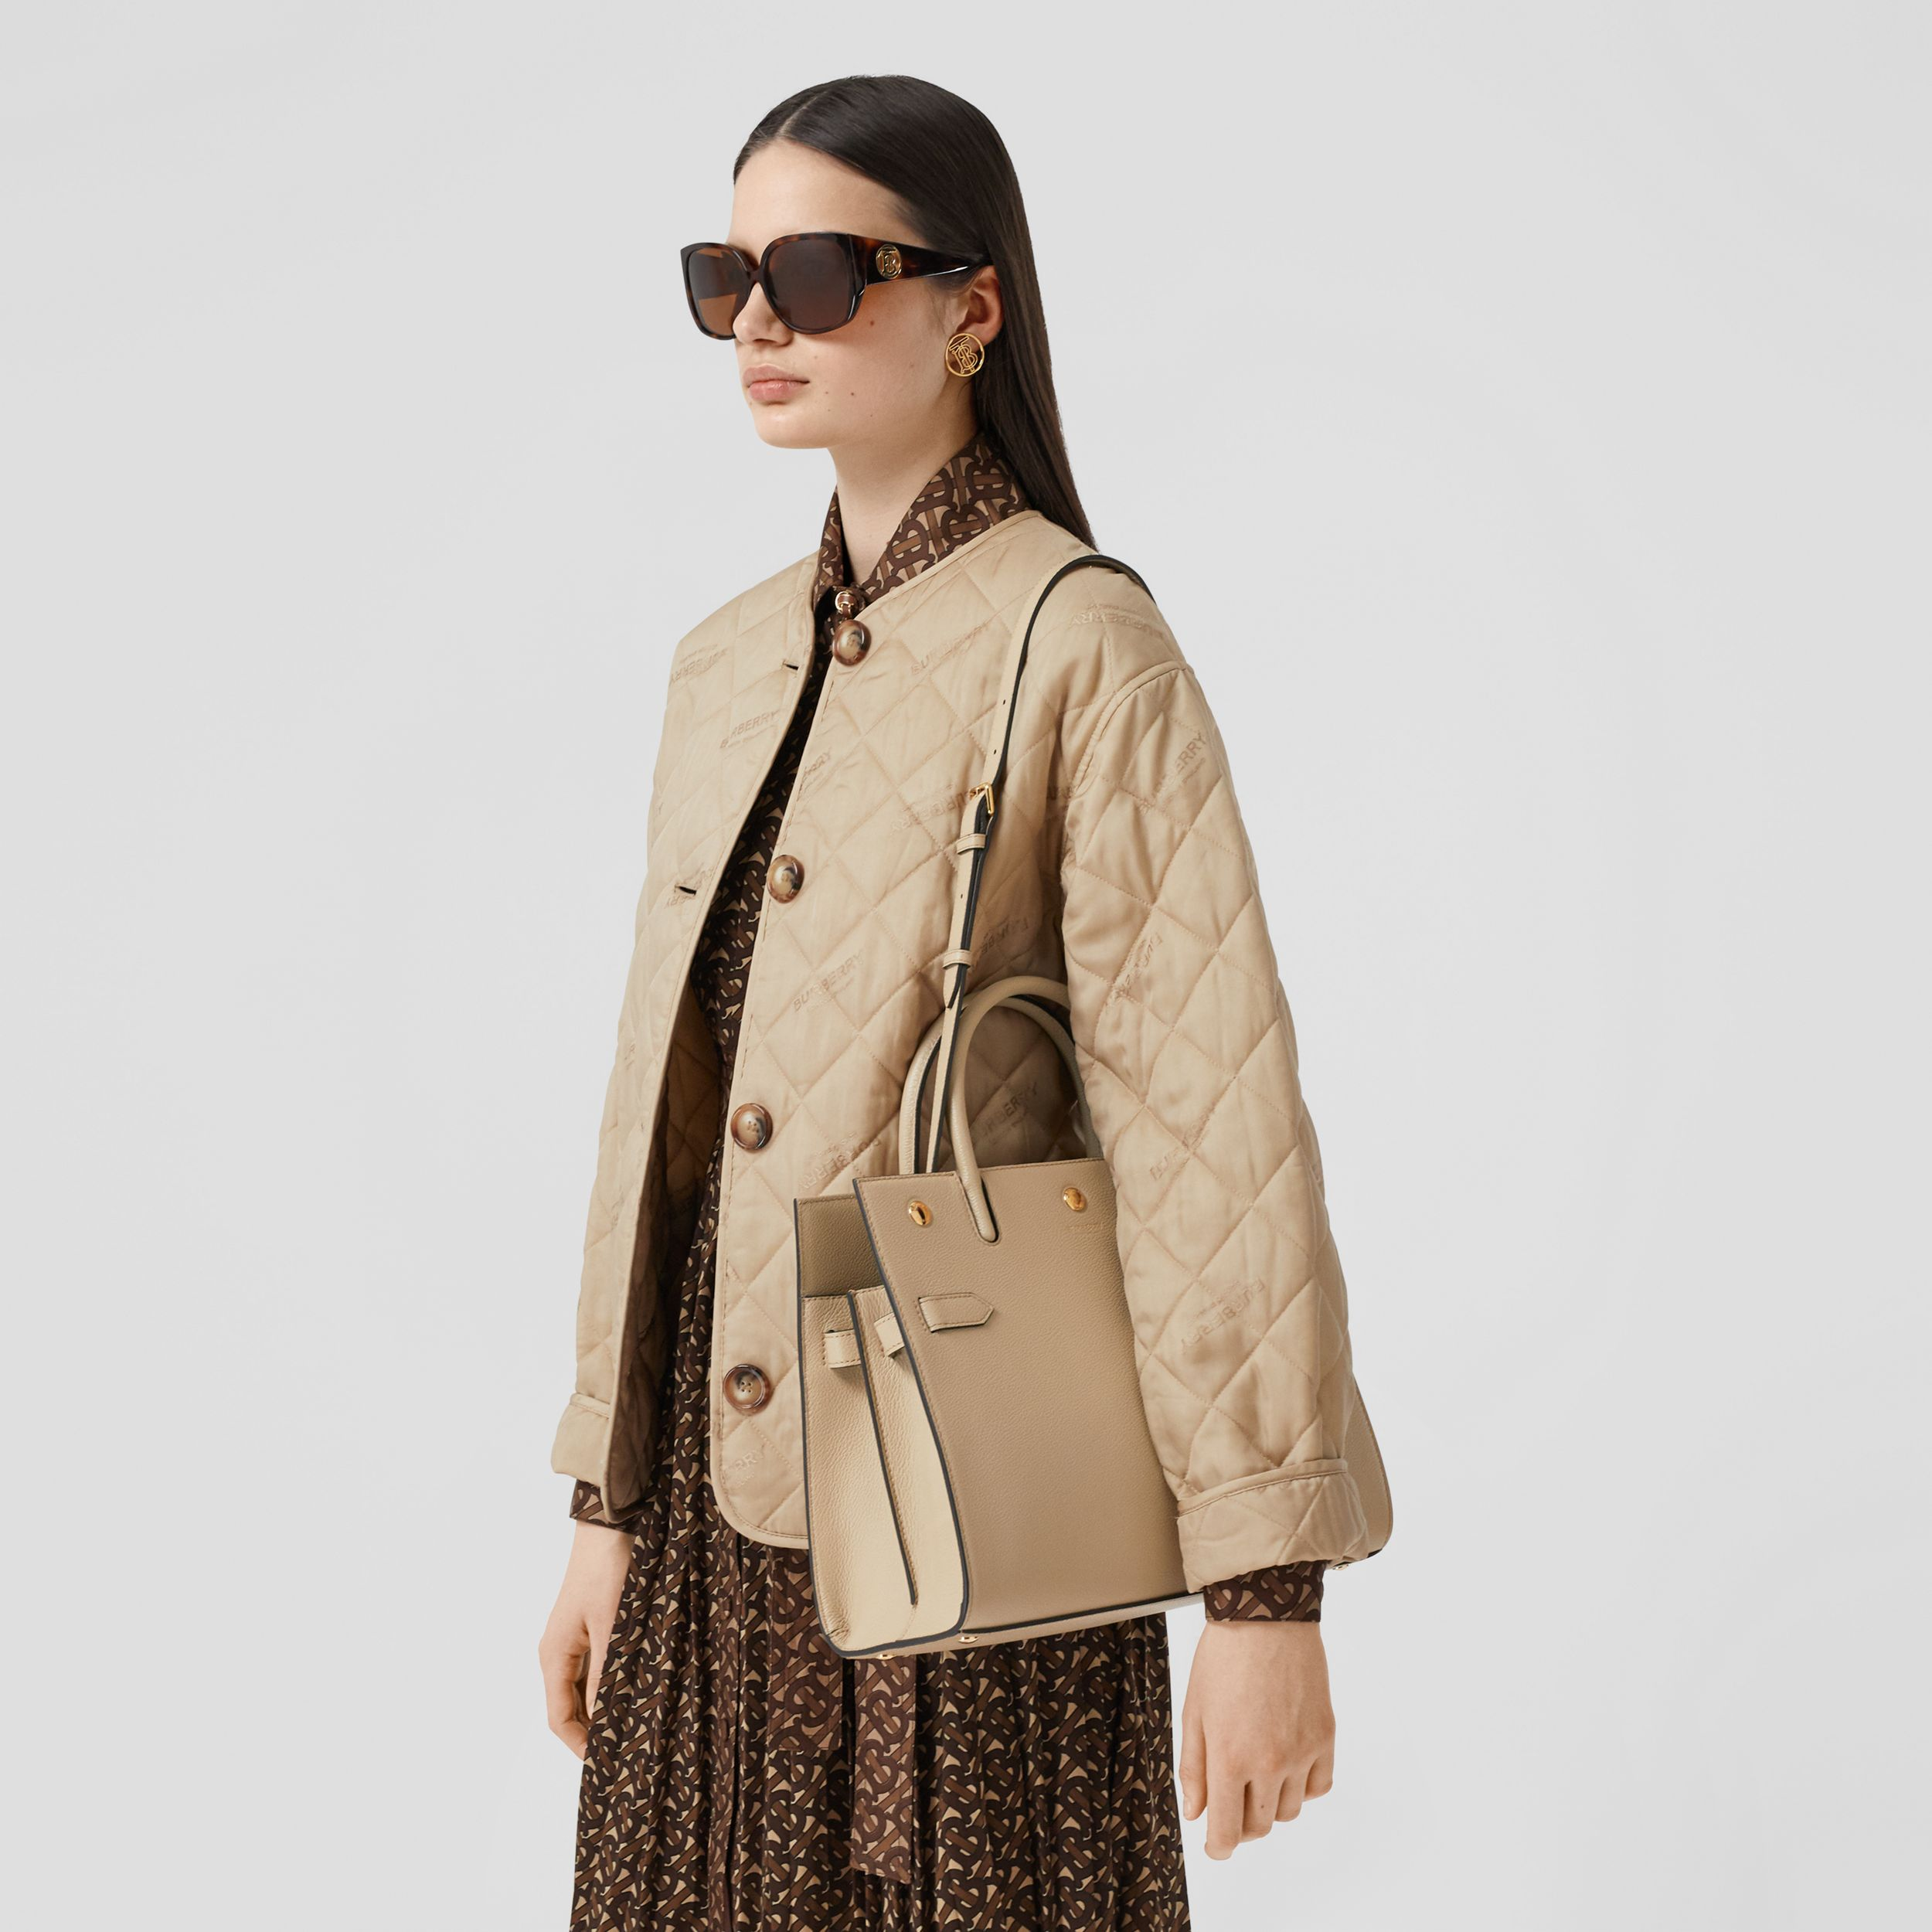 Small Leather Two-handle Title Bag in Light Beige - Women | Burberry Singapore - 3